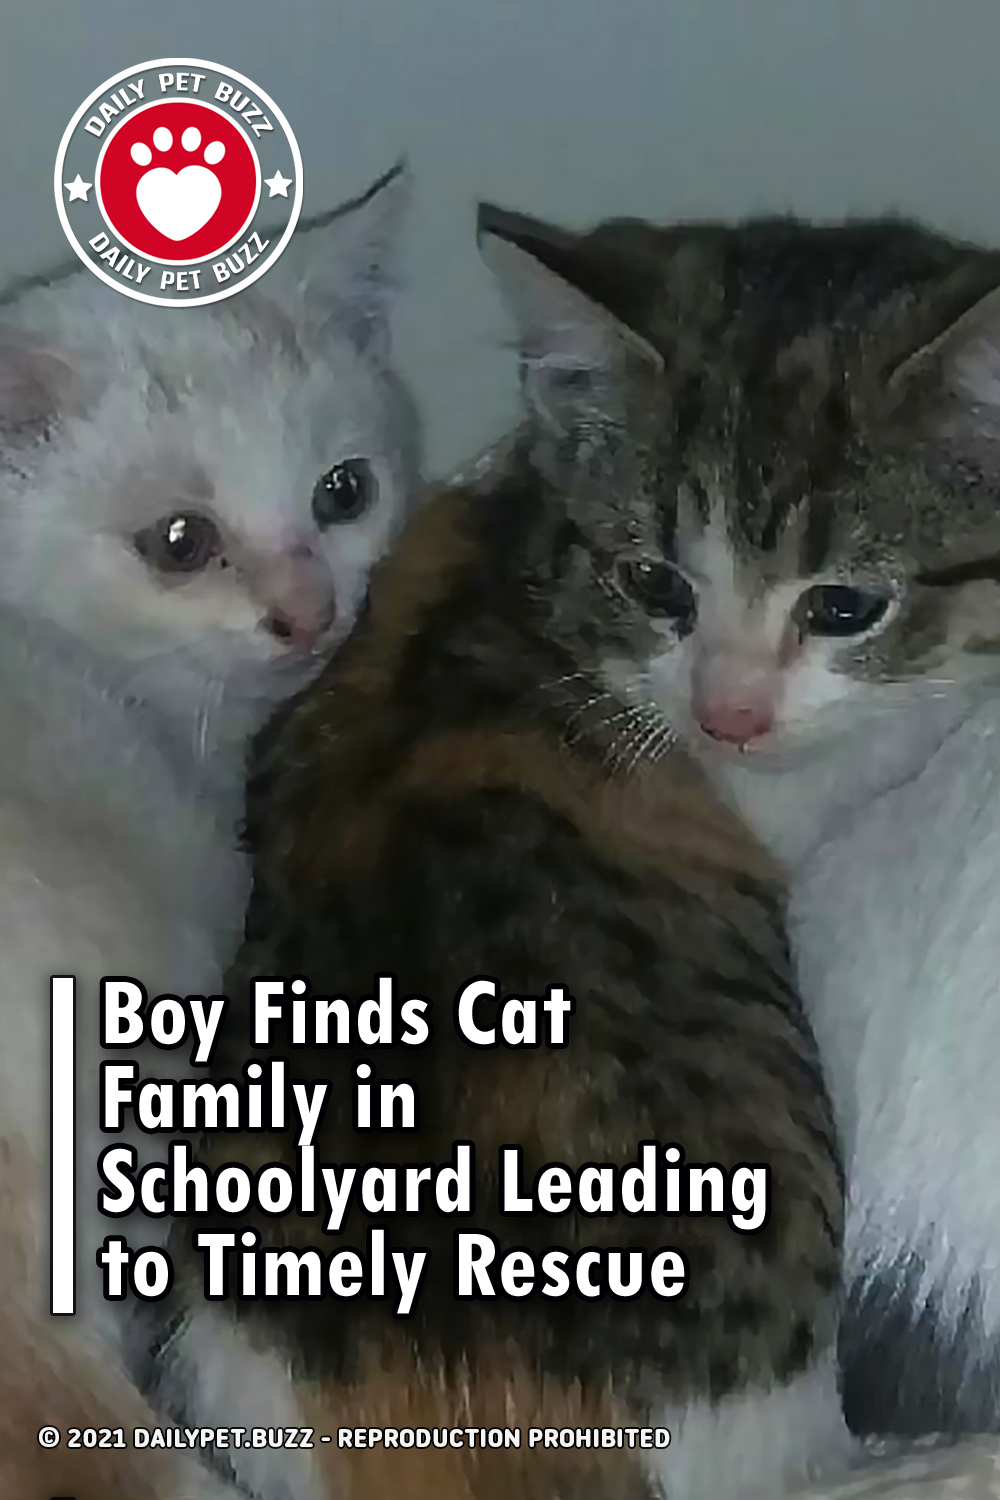 Boy Finds Cat Family in Schoolyard Leading to Timely Rescue